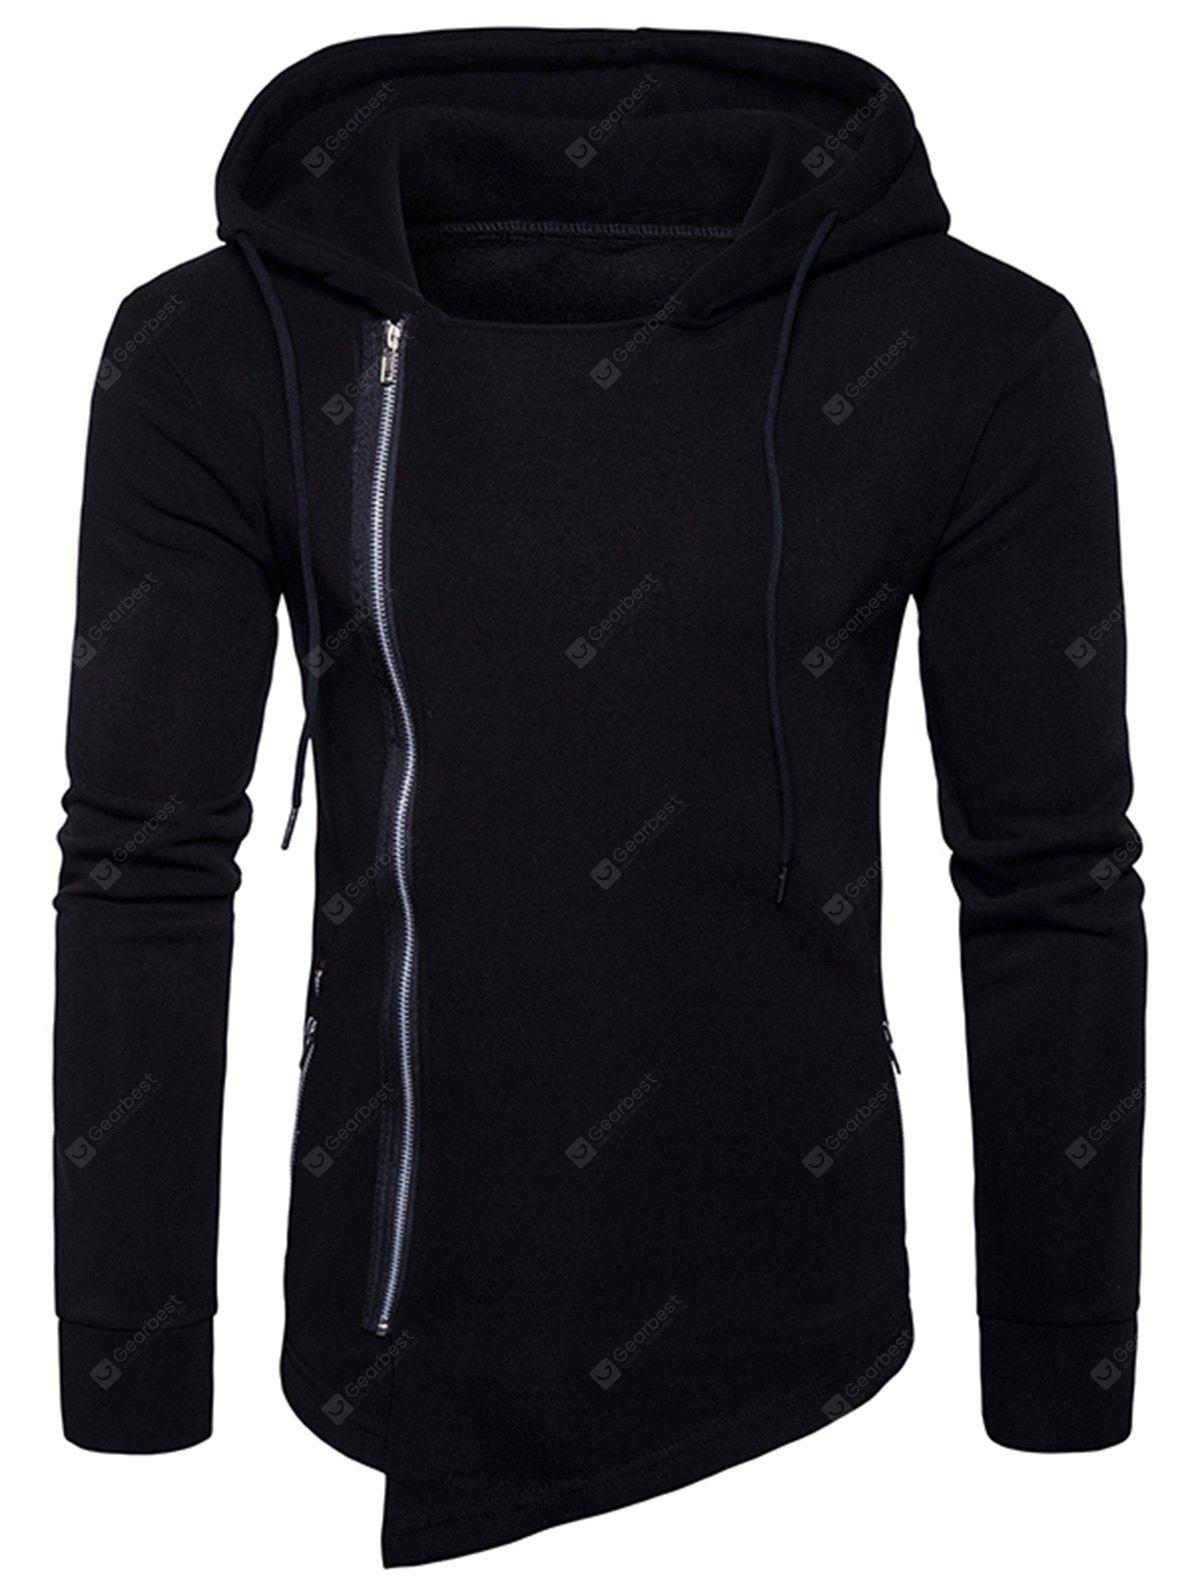 BLACK 2XL Hooded Drawstring Asymmetric Zip Up Hoodie